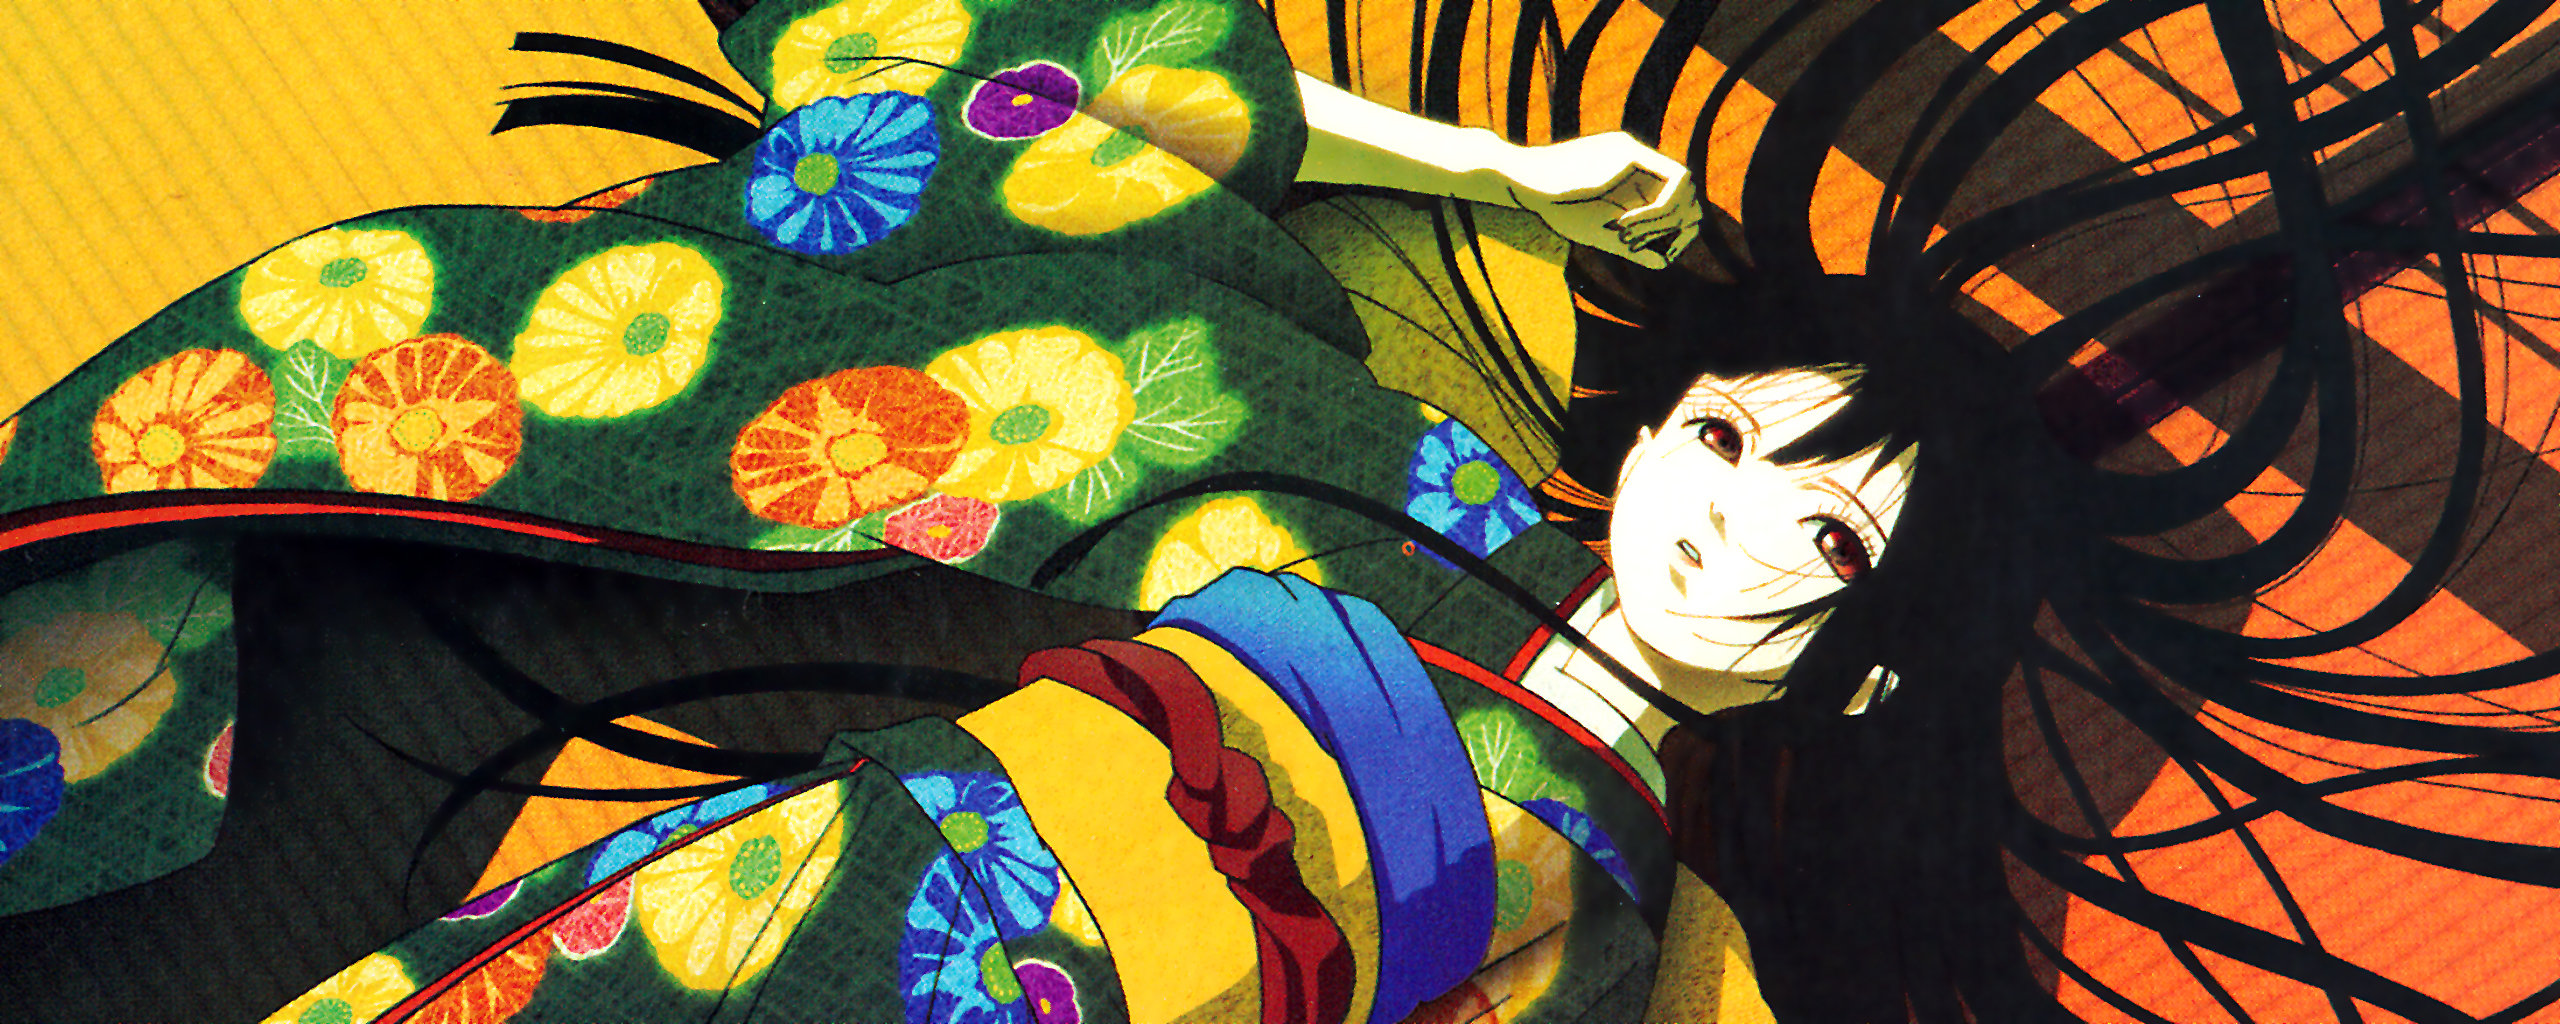 Awesome Jigoku Shojo free wallpaper ID:353925 for dual screen 2560x1024 desktop